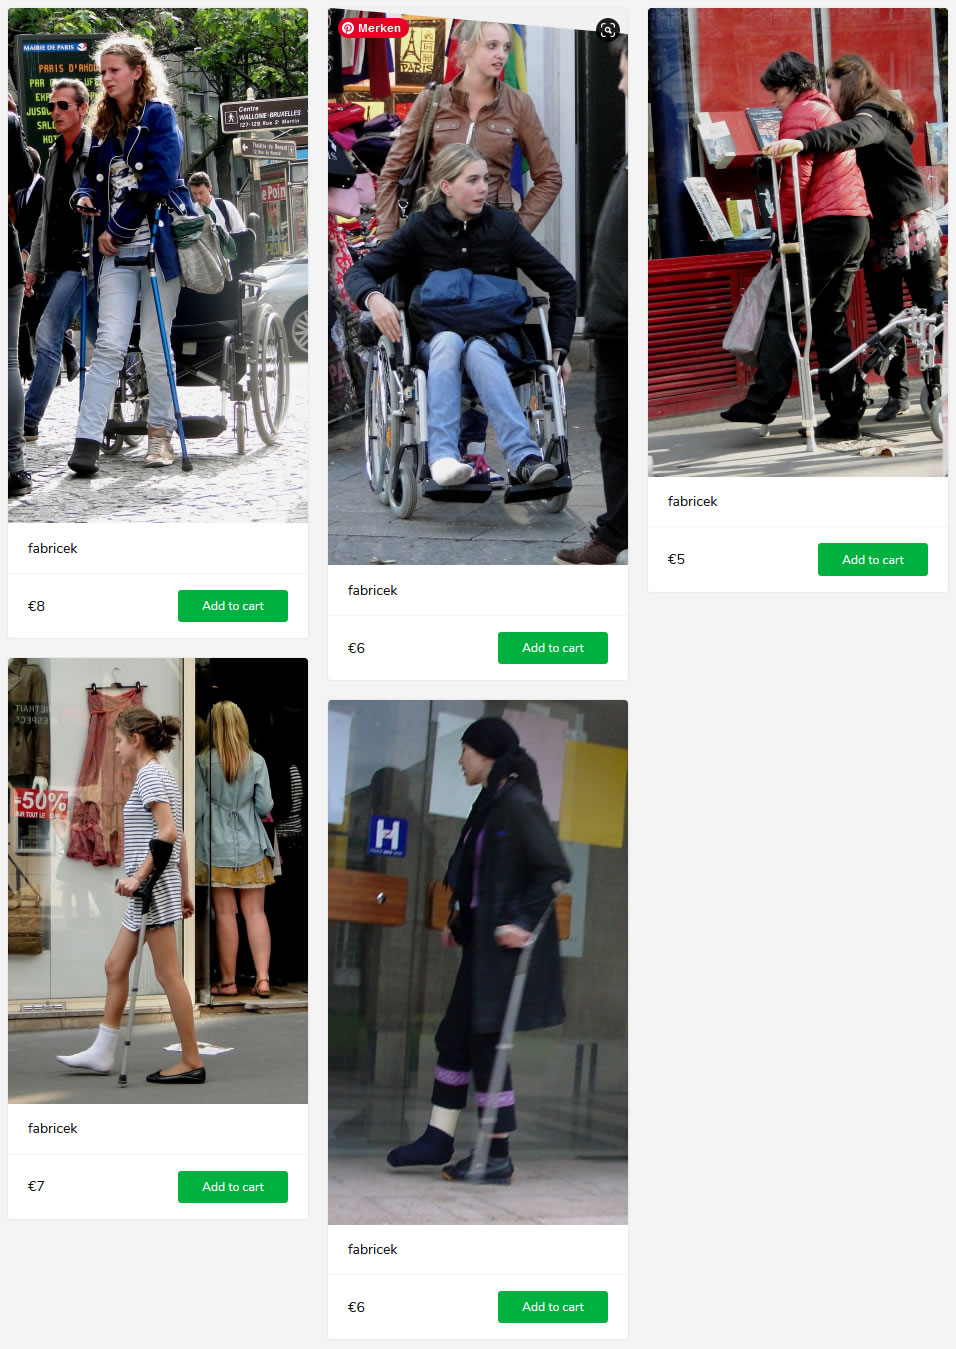 5 new sets (different girls struggling with plastered feet on crutches and in wheelchair)